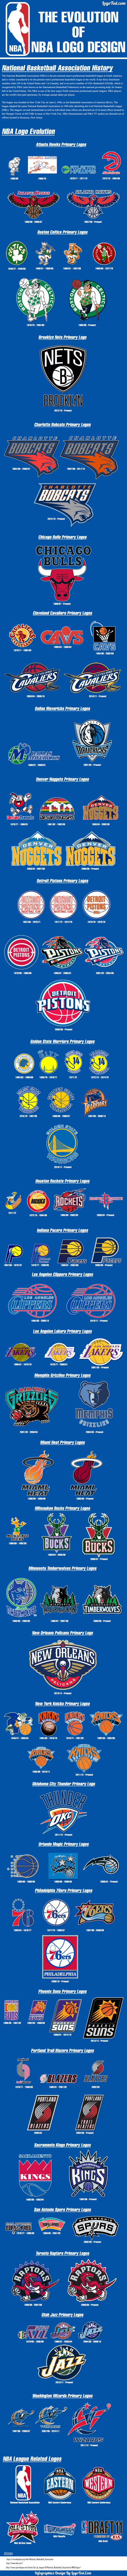 The Evolution of NBA Logo Design